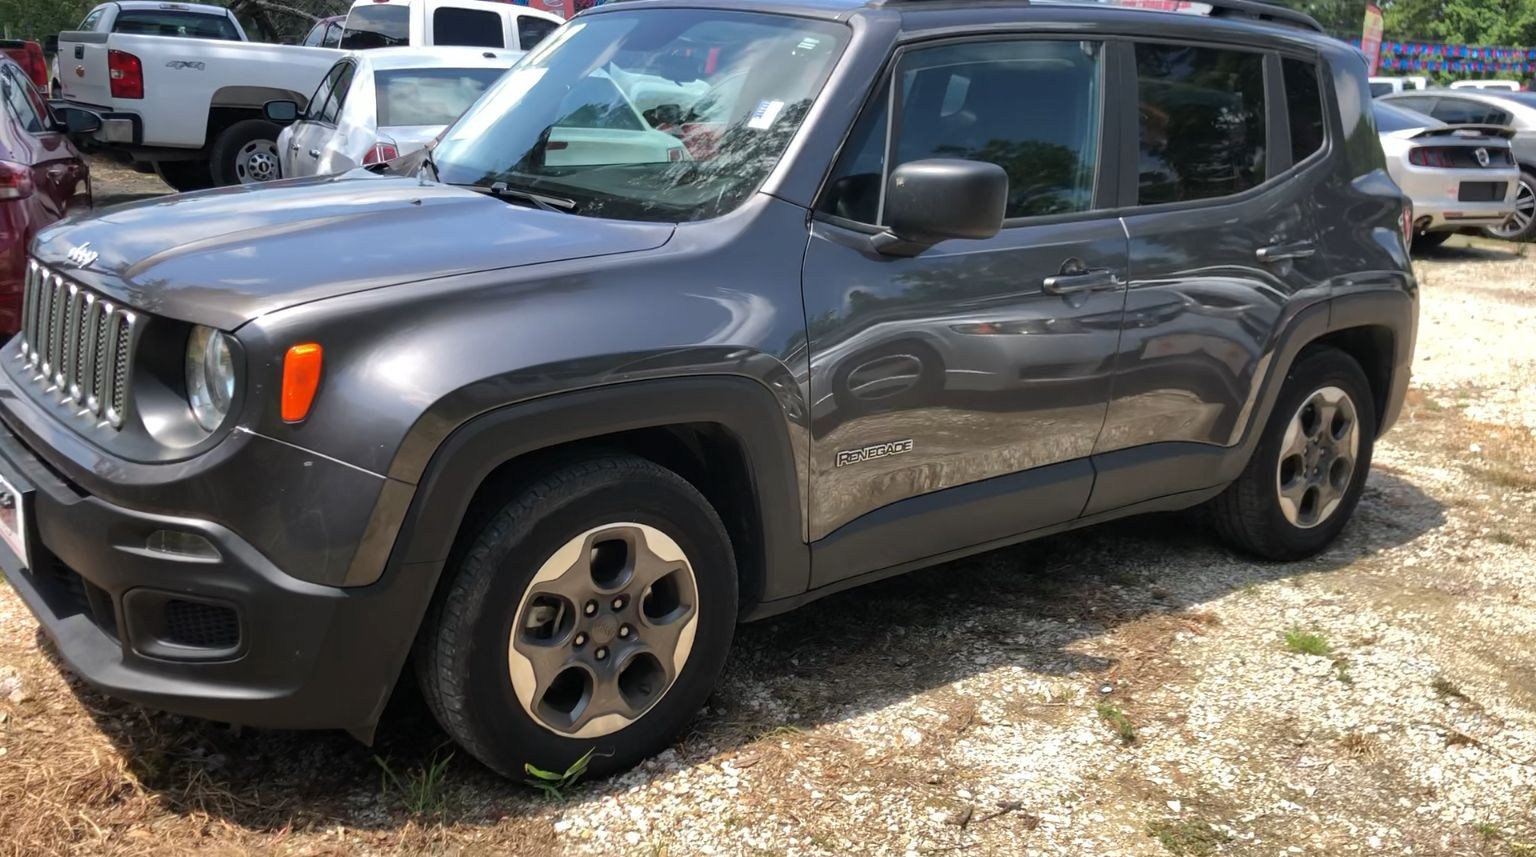 Jeep renegade image by Calimax Auto Sales on SUVs Jeep